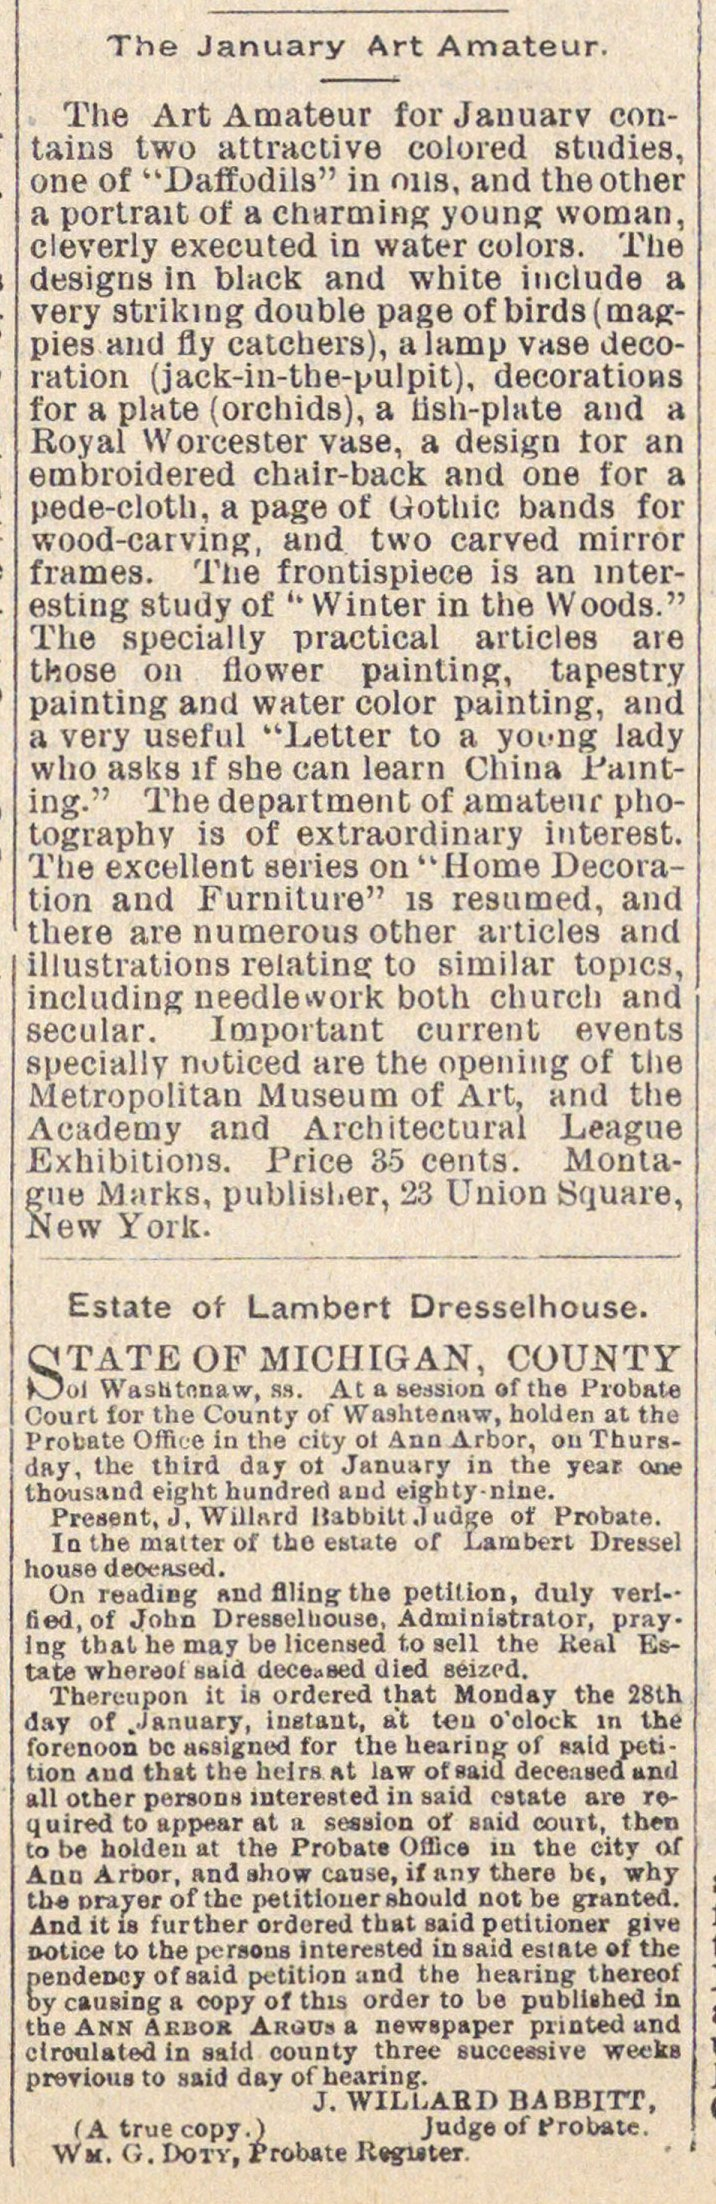 The January Art Amateur and Estate of Lambert Dresselhouse image